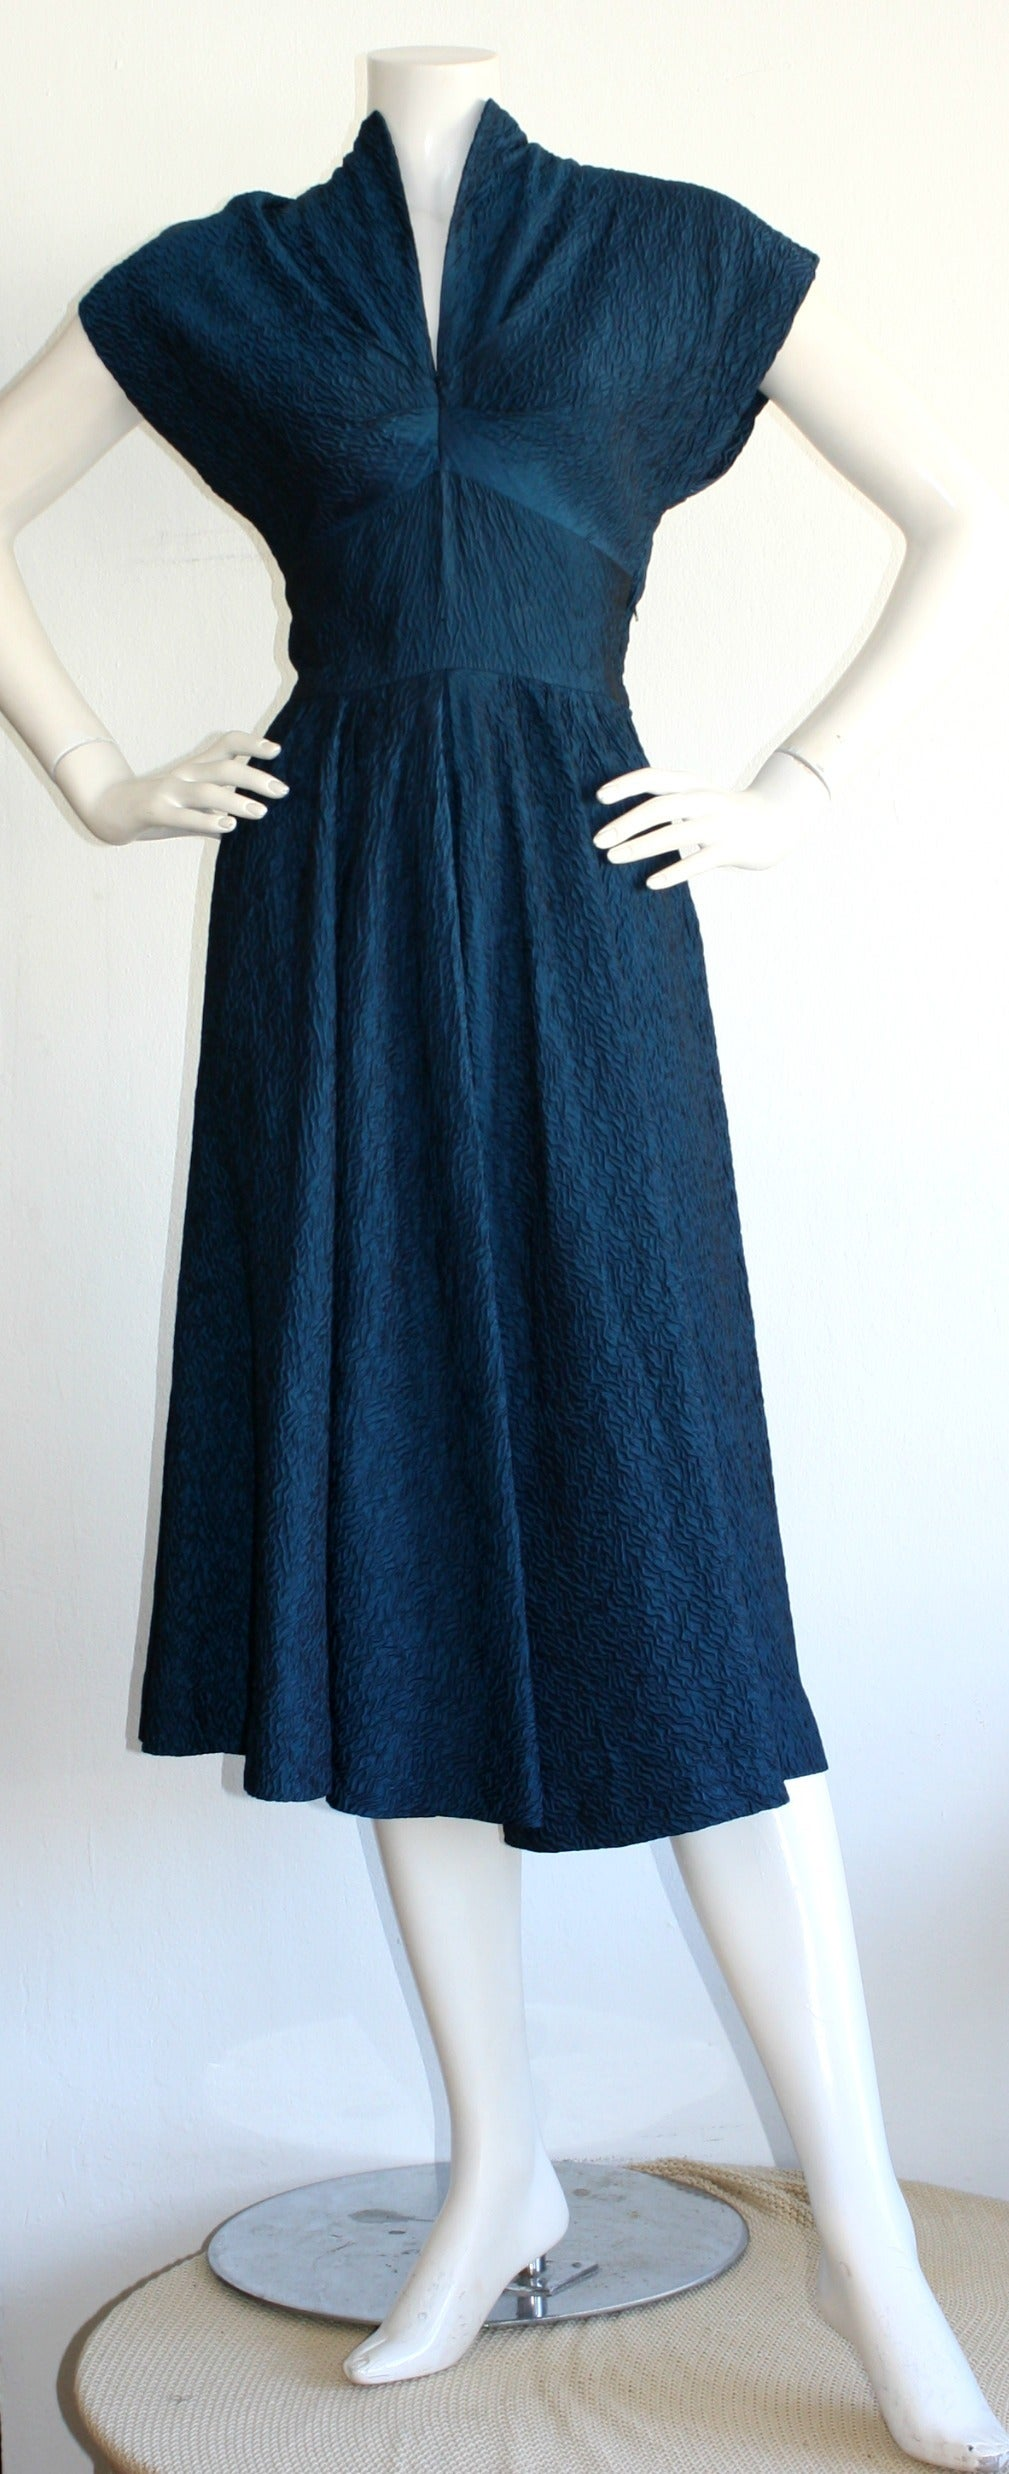 Ultimate Vintage 1940s Dress Blue Textured Silk W/ Dramatic Neck 2